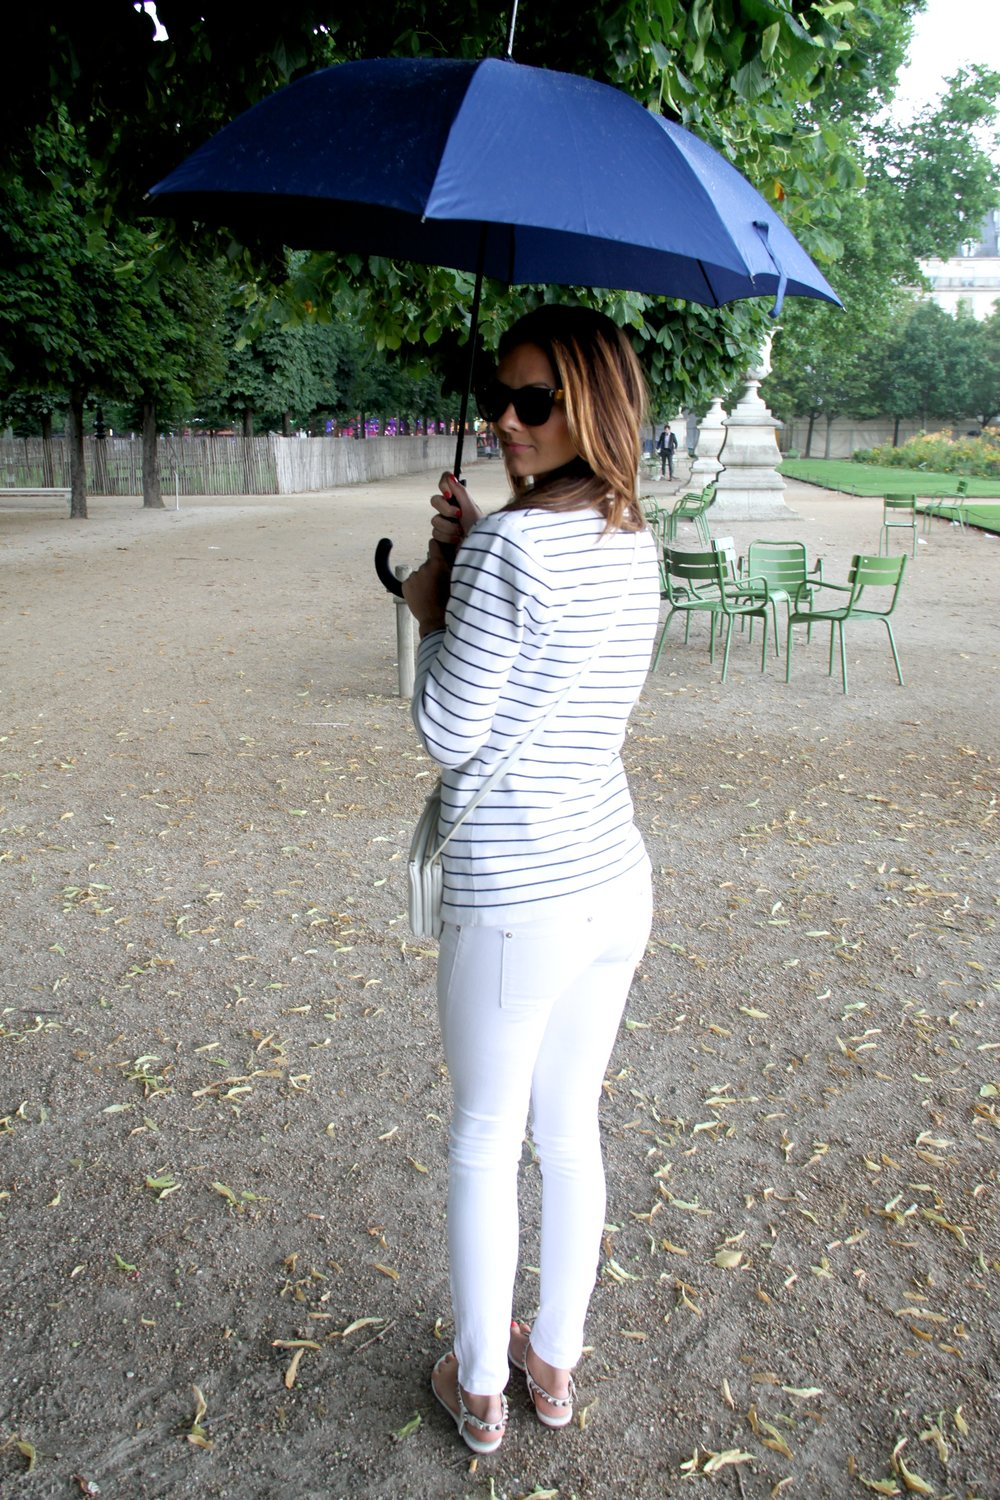 Last day in Paris - Umbrella